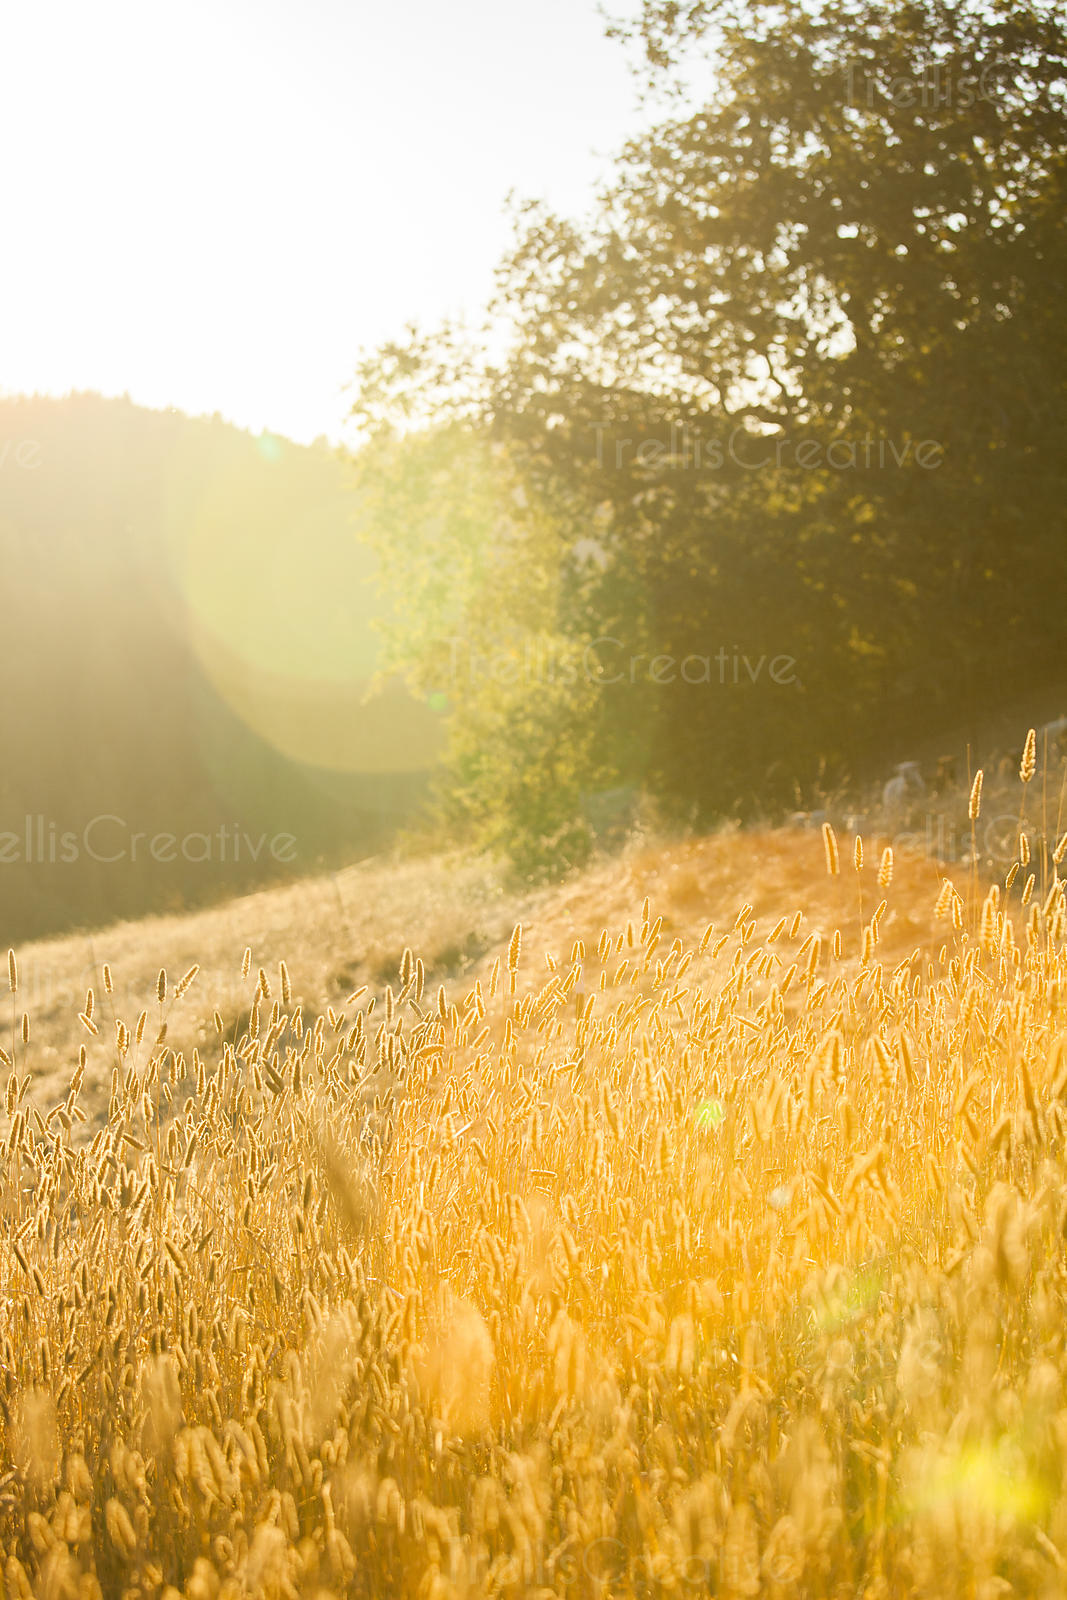 Golden grass growing on the mountain slope